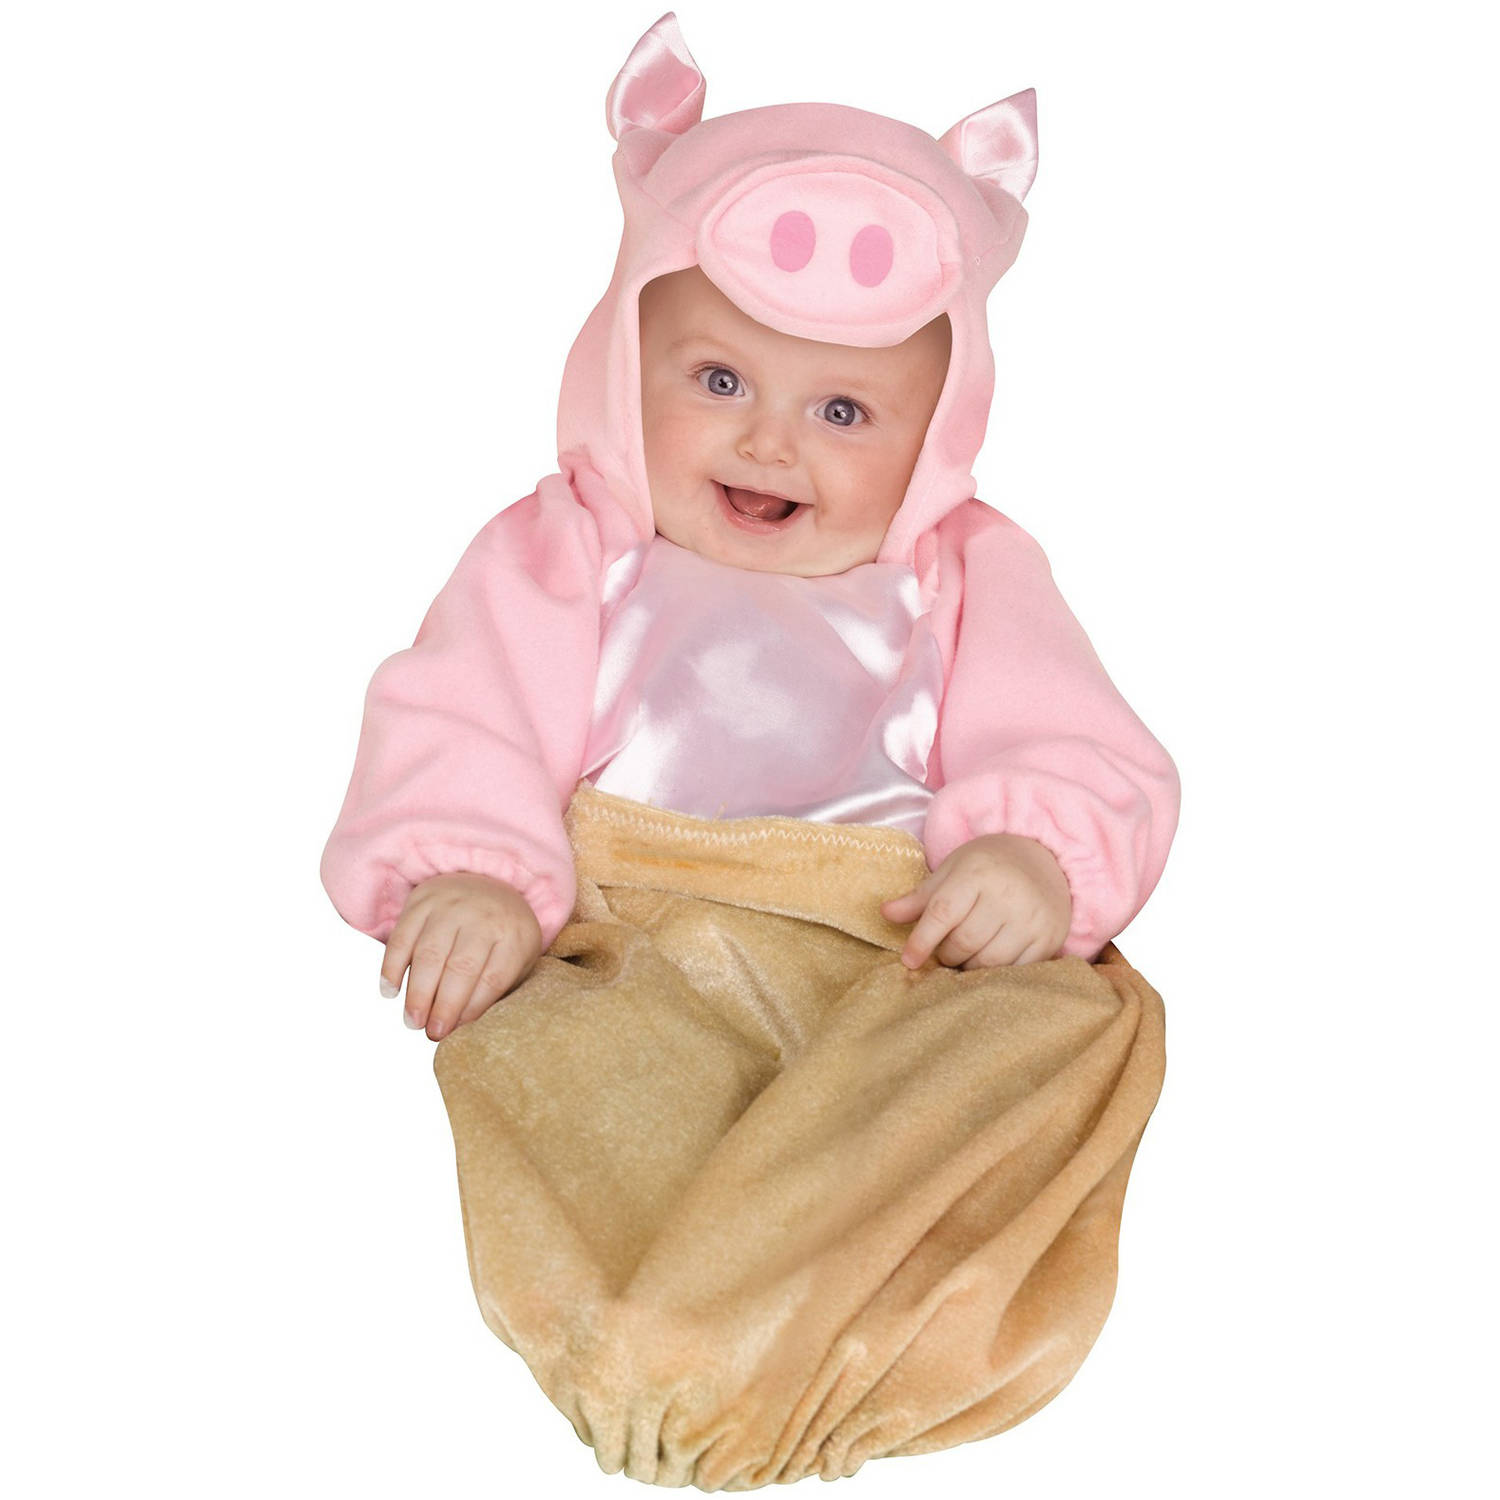 pig in a blanket infant halloween costume, size 0-6 months - walmart